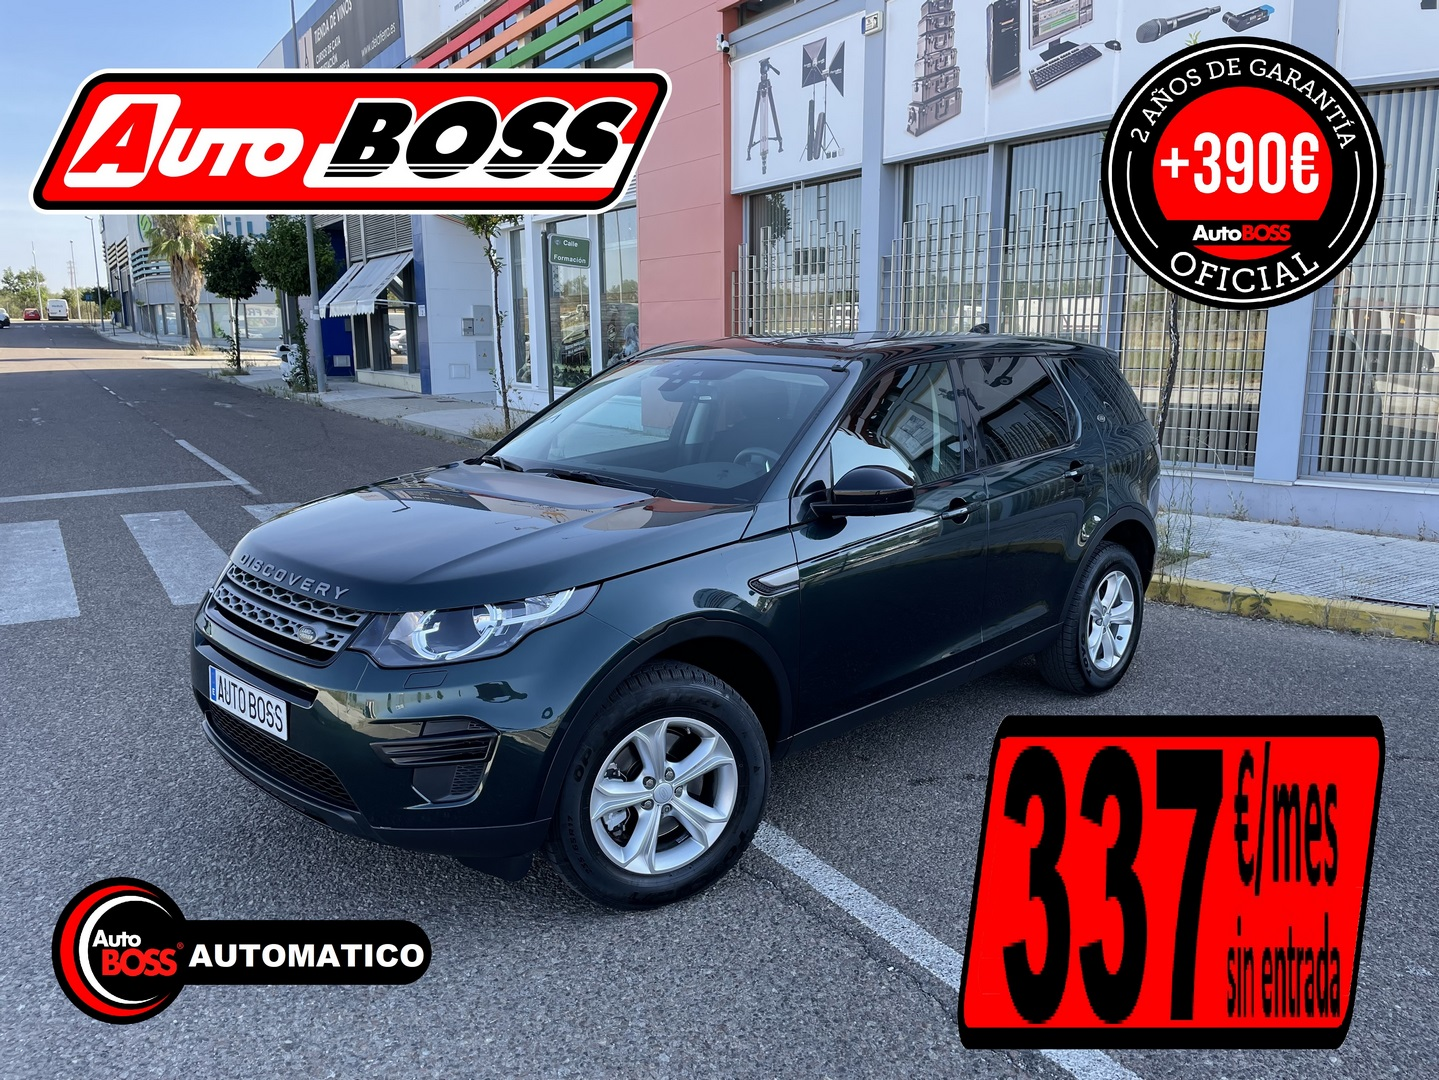 LAND ROVER DISCOVERY SPORT | 2017 | 25.950€